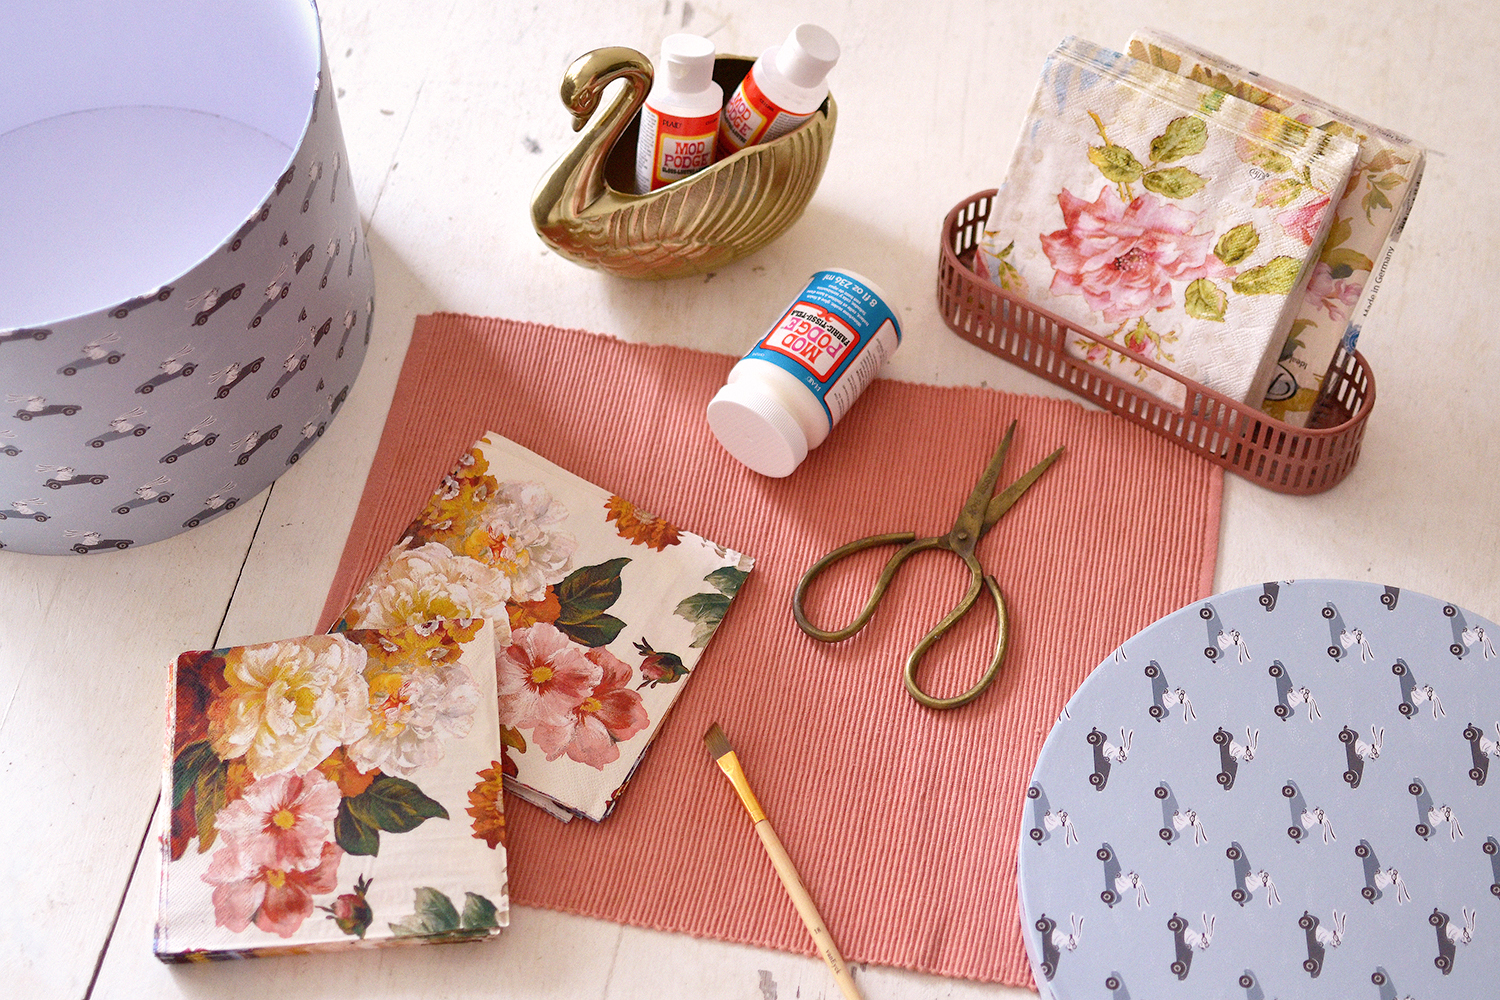 Retromantisch - DIY - hoedendoos bloemen decoupage servetten napkins floral retro romantic mod podge flowers bloemen hat box